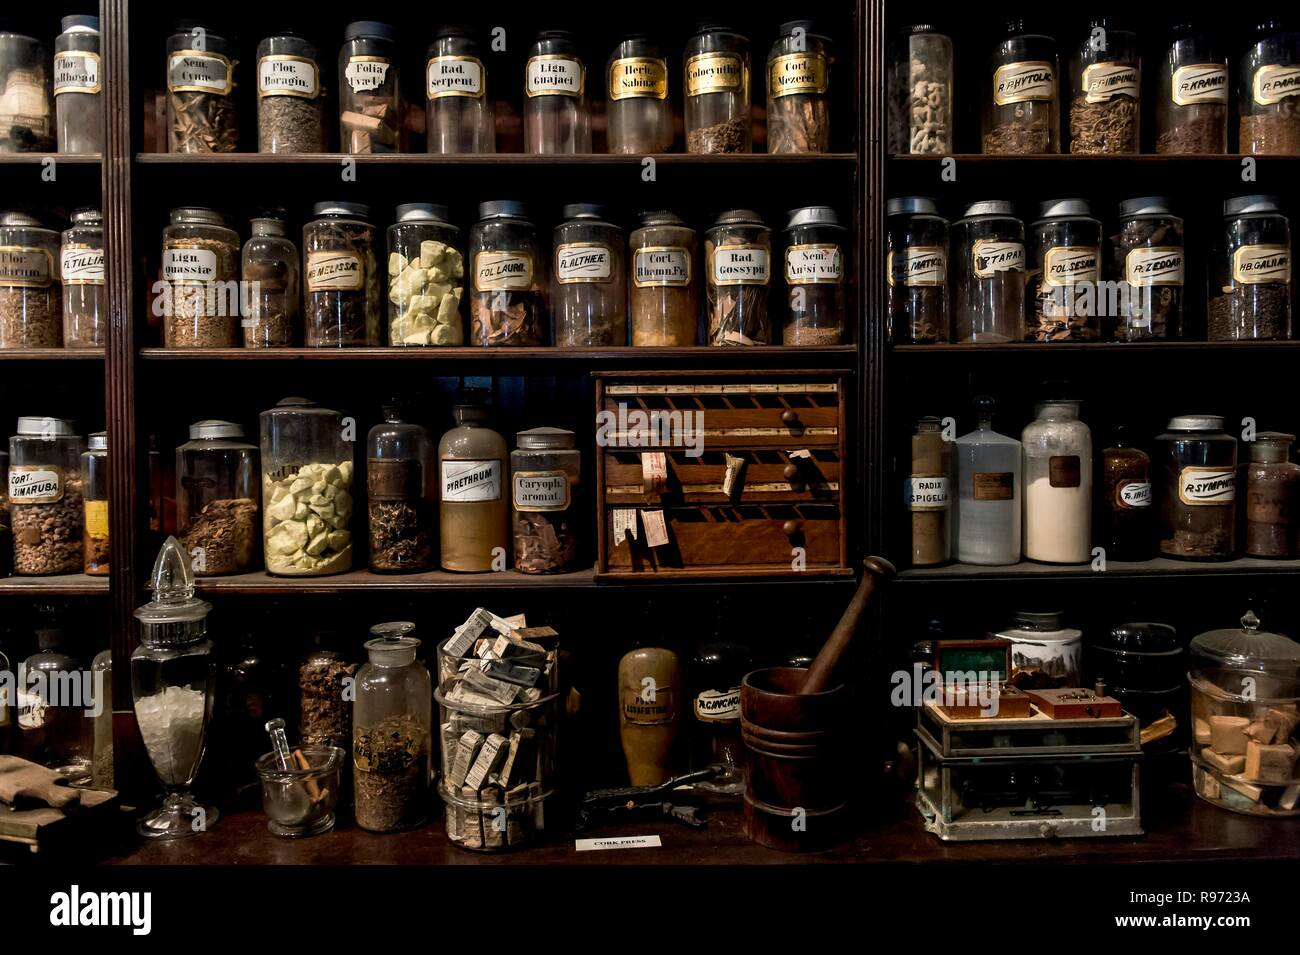 New Orleans, Louisiana, USA. 20th Dec, 2018. Louis Dufilho, America's first licensed pharmacist, operated his apothecary shop on Chartres Street in New Orleans' French Quarter neighborhood. Today, the apothecary shop houses the New Orleans Pharmacy Museum, which houses the largest pharmaceutical collection in the United States. Credit: Brian Cahn/ZUMA Wire/Alamy Live News Stock Photo